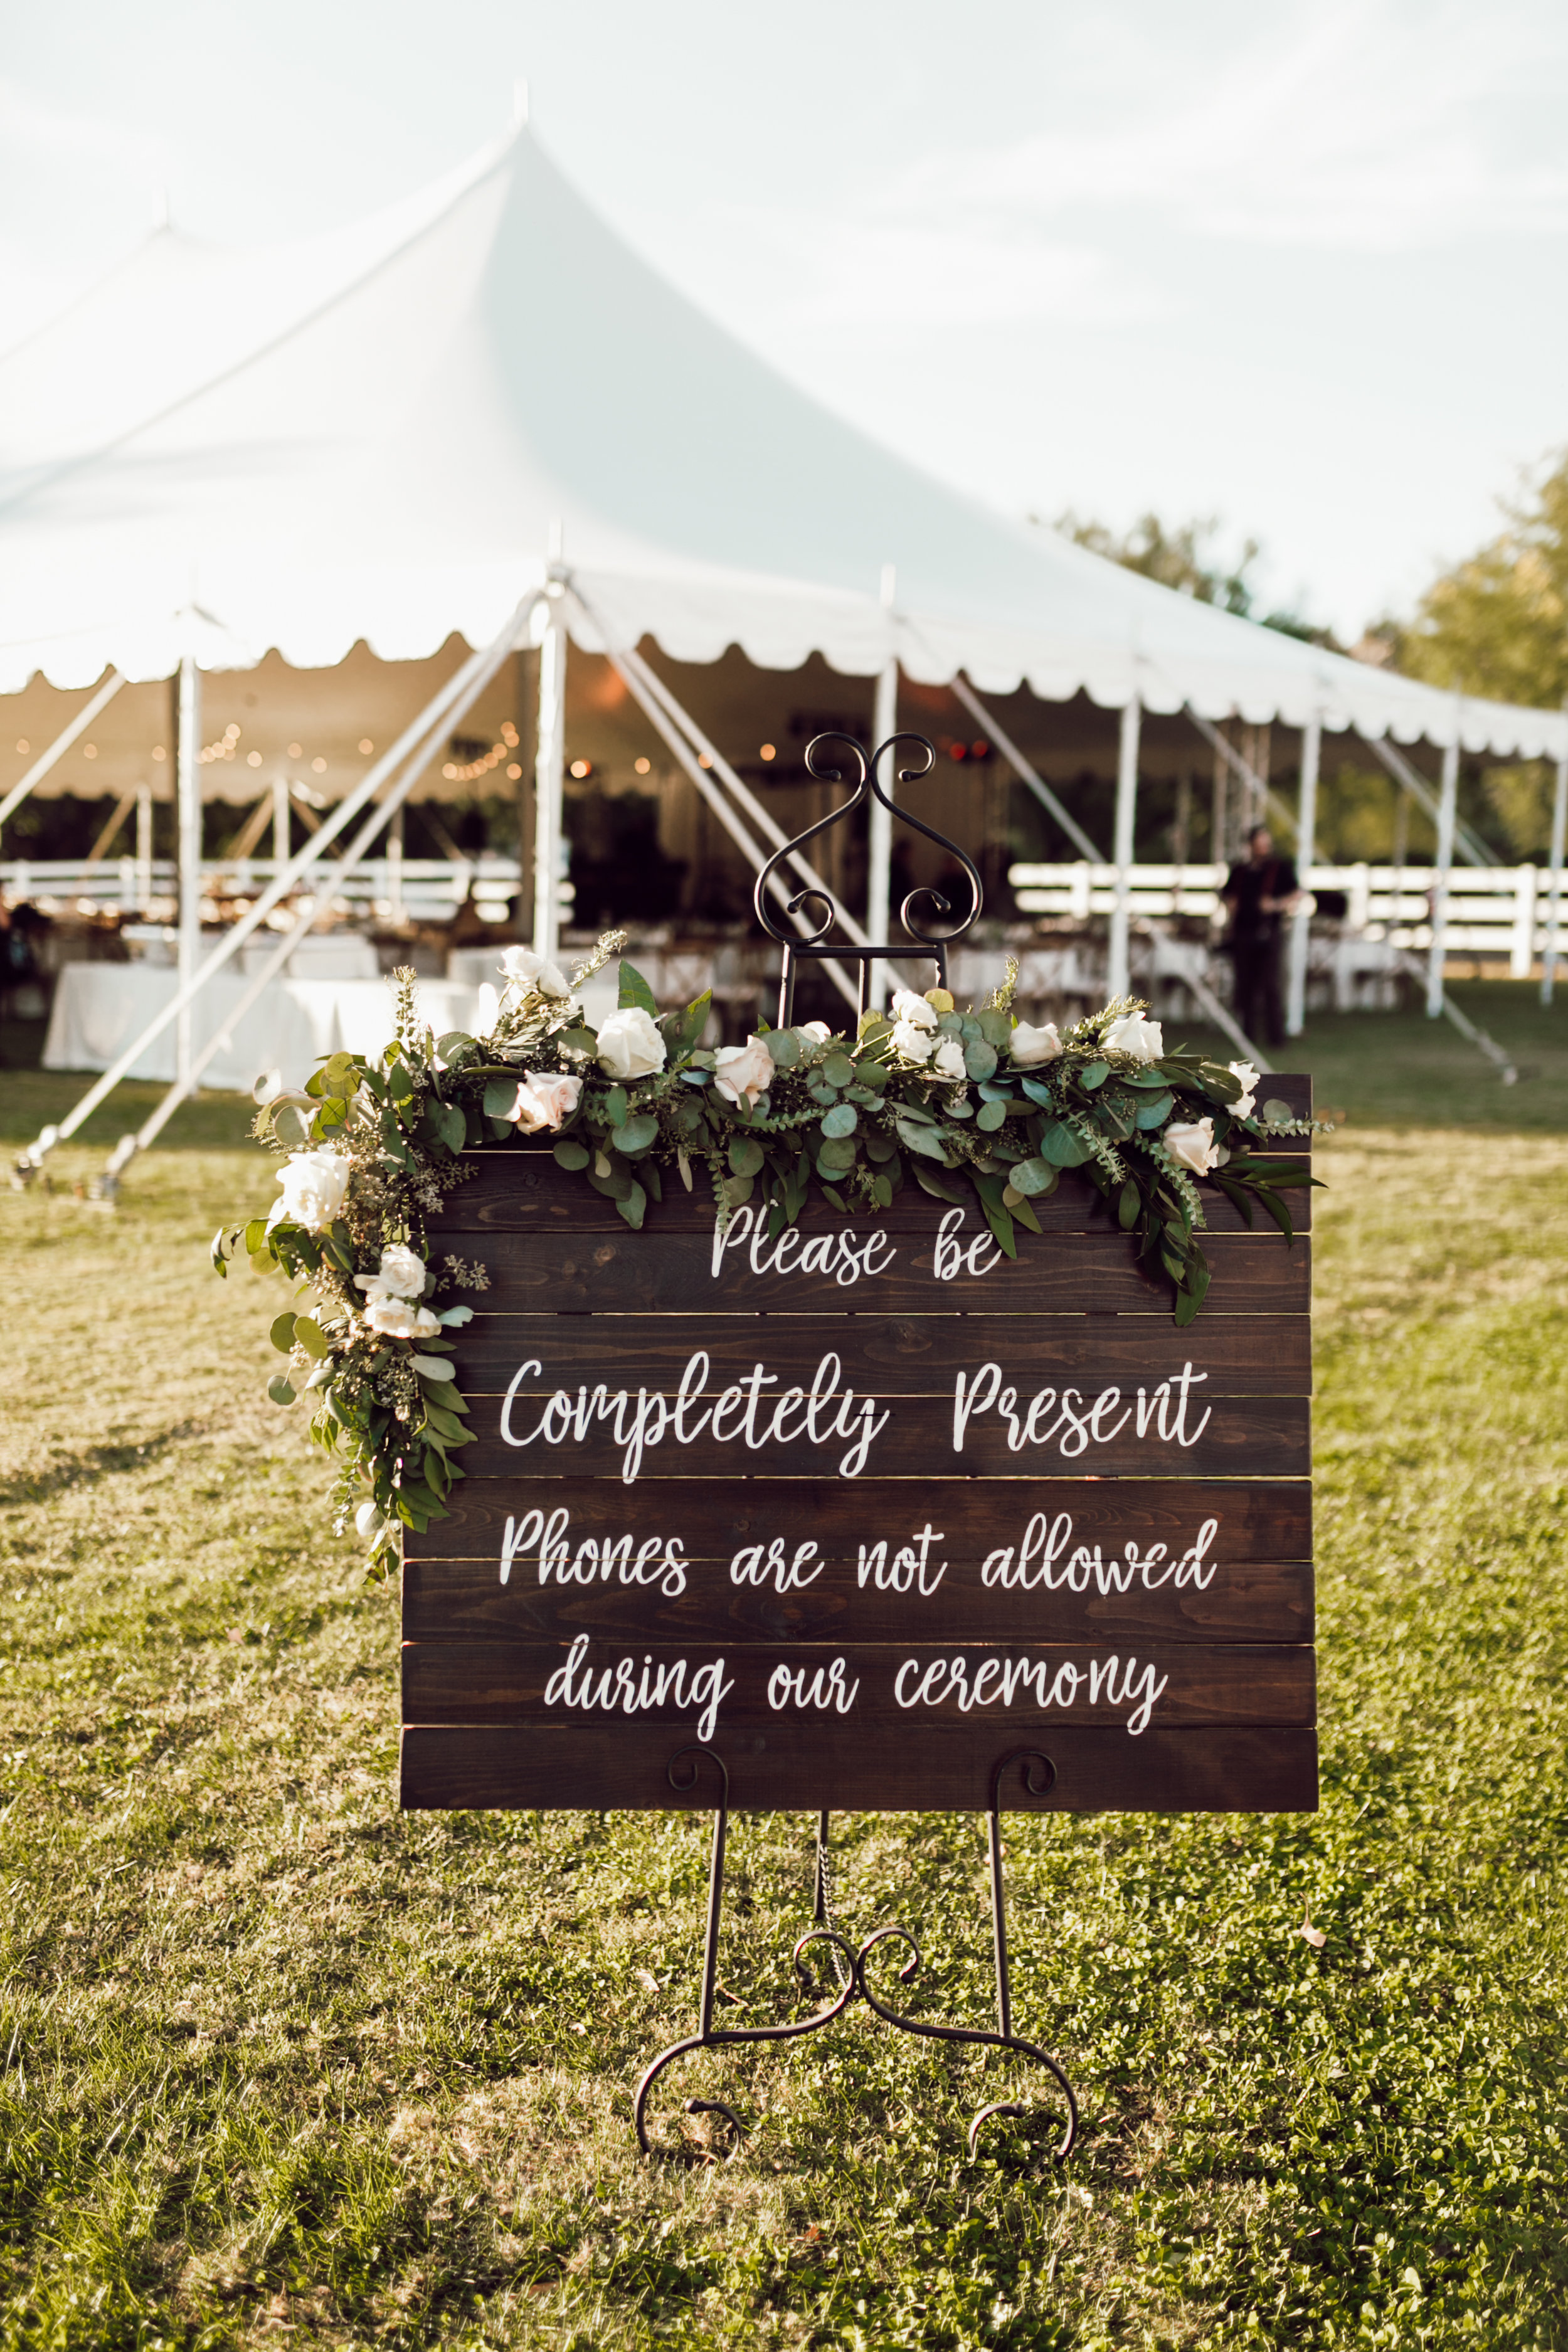 DA Ranch Fall Wedding - No Cell Phone Sign for Ceremony